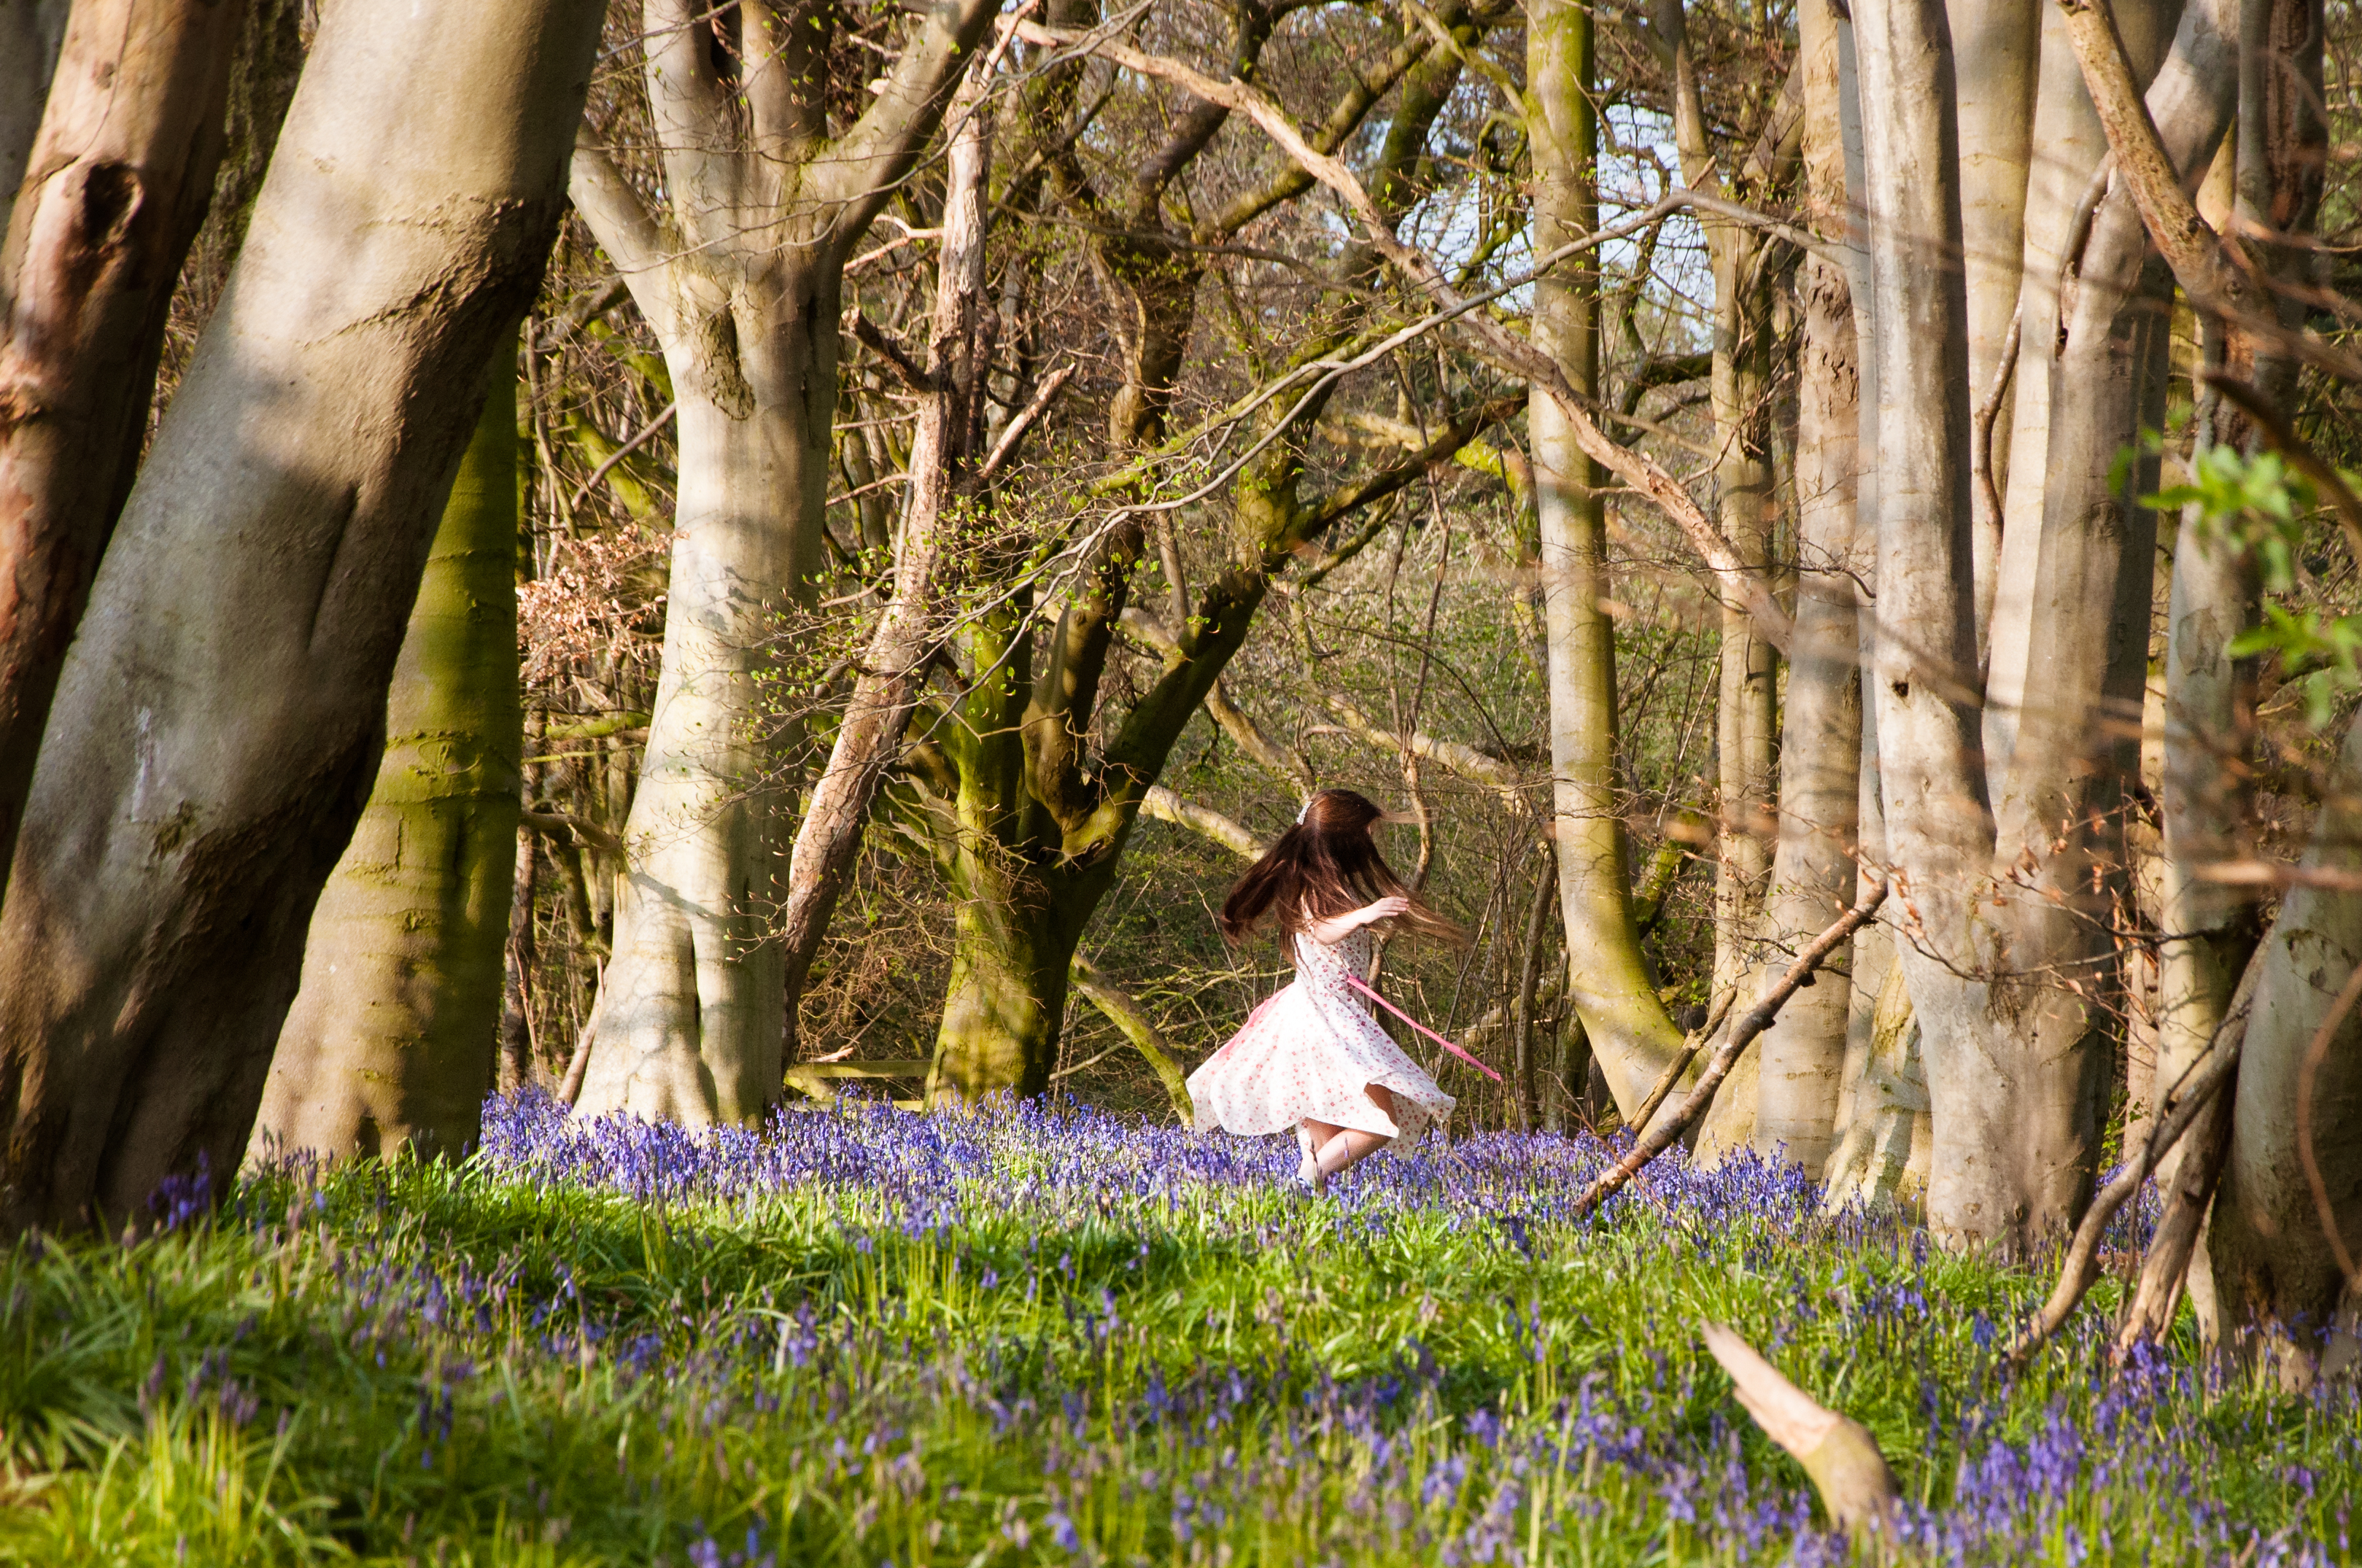 Ellie Dancing in the Bluebells